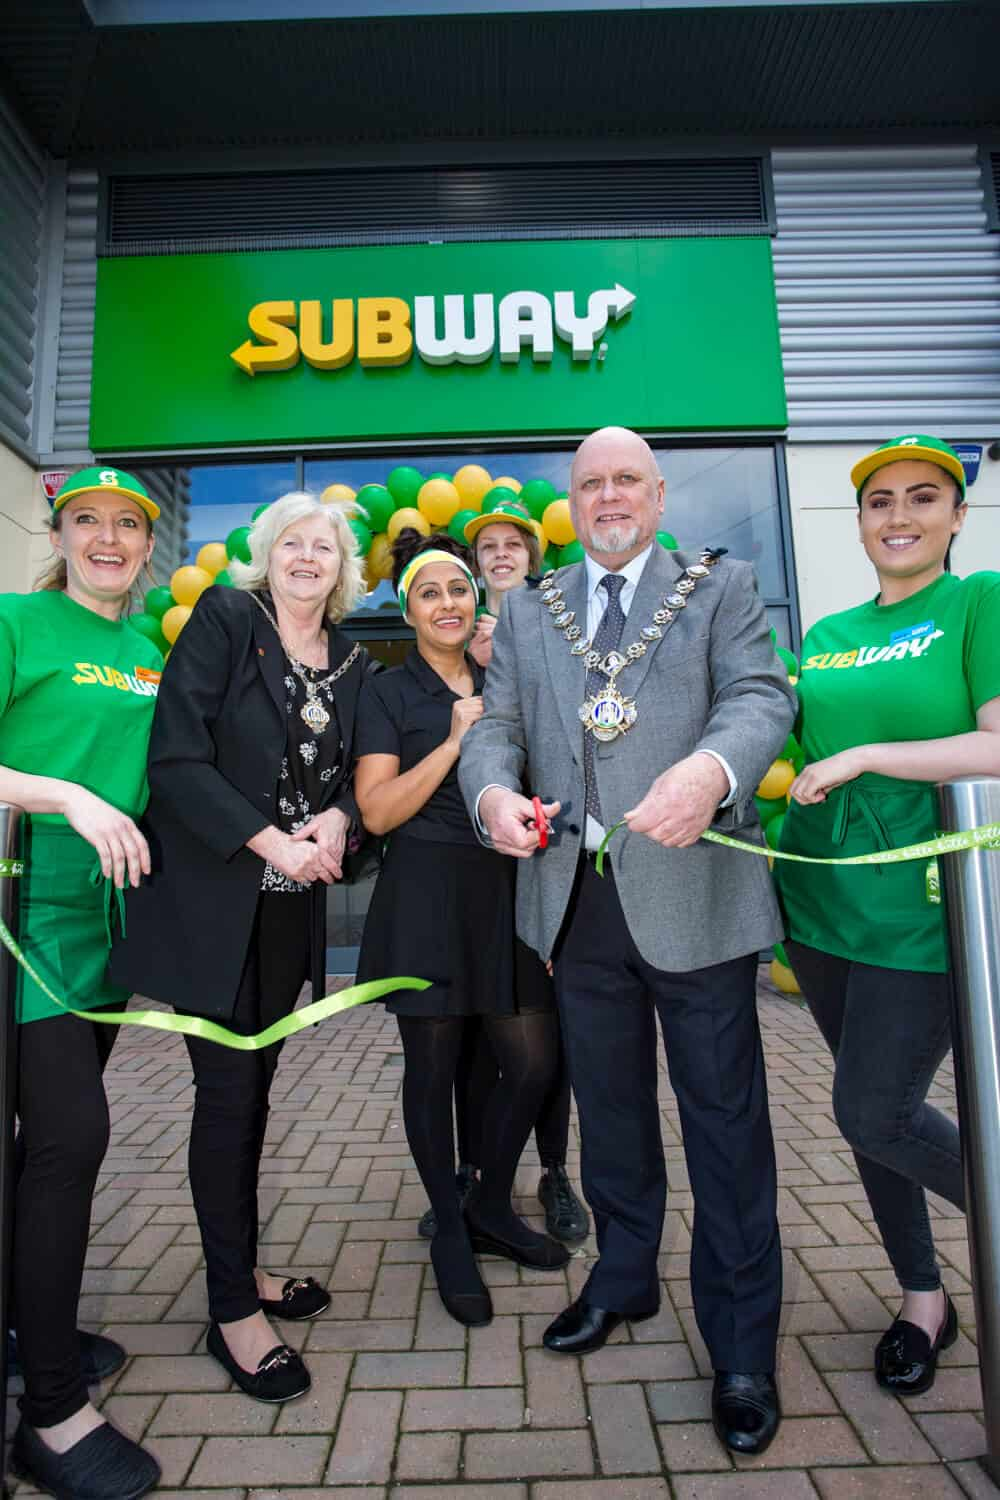 retail store opening photography Toby Smedley commercial photographer Subway Lord Mayor ribbon cutting.4